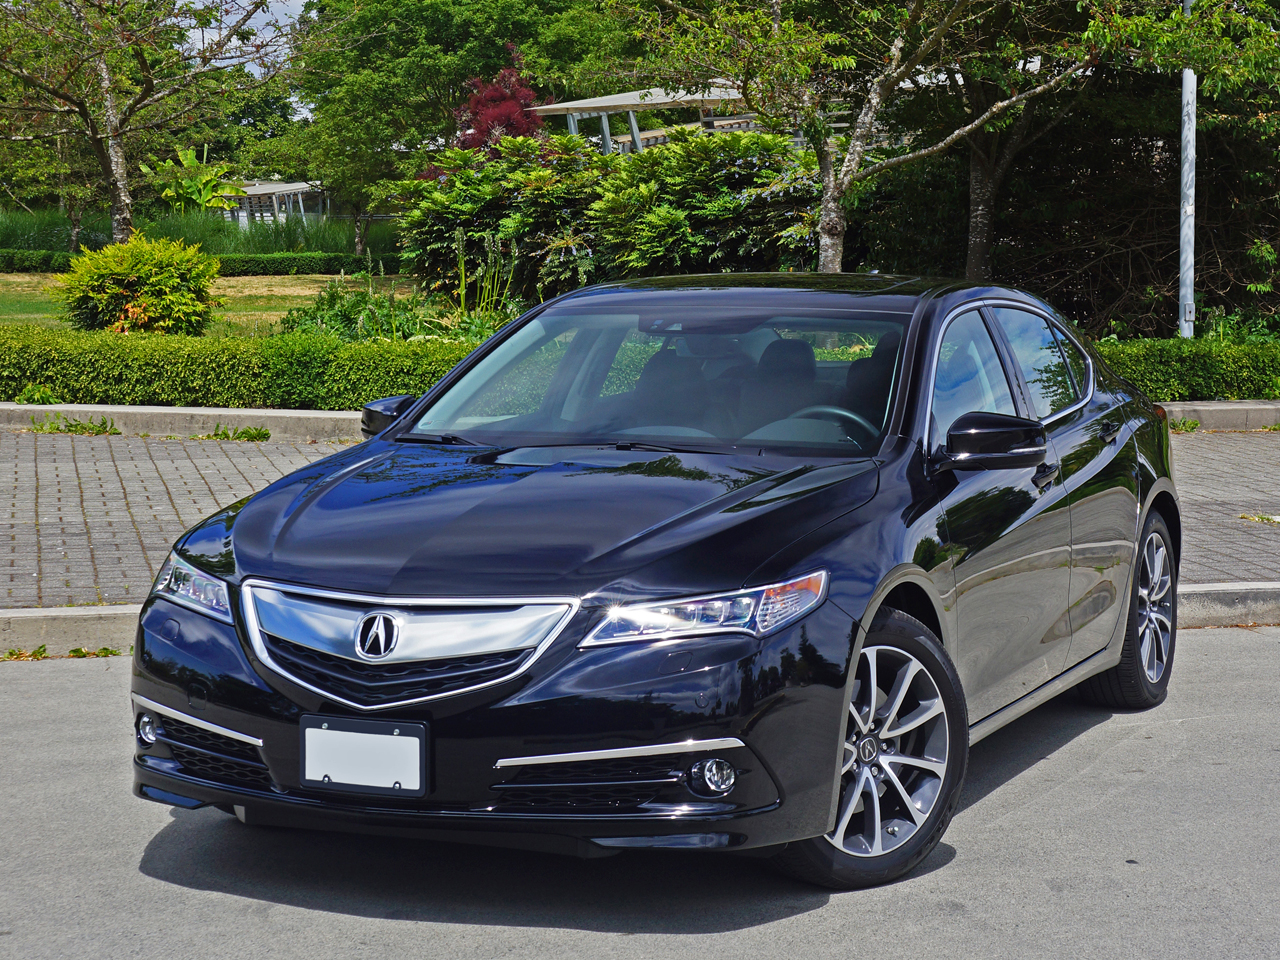 2016 acura tlx sh awd elite road test review carcostcanada. Black Bedroom Furniture Sets. Home Design Ideas